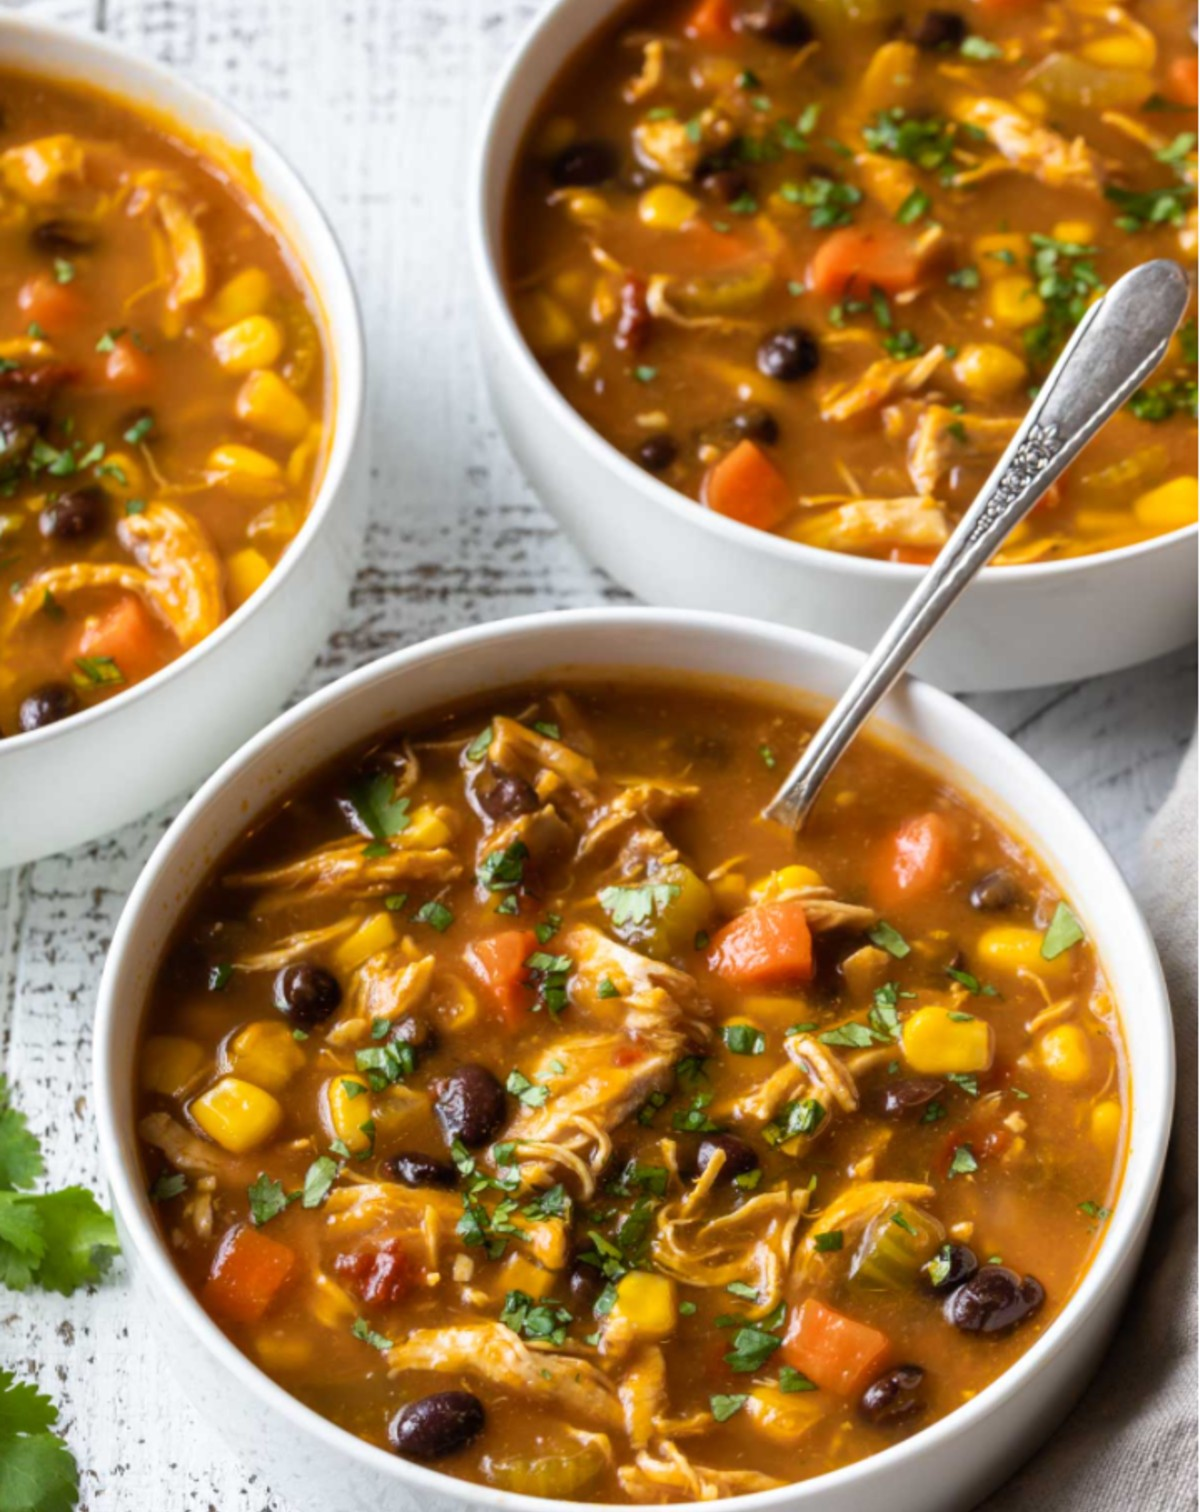 chipotle Chicken and Pumpkin Soup